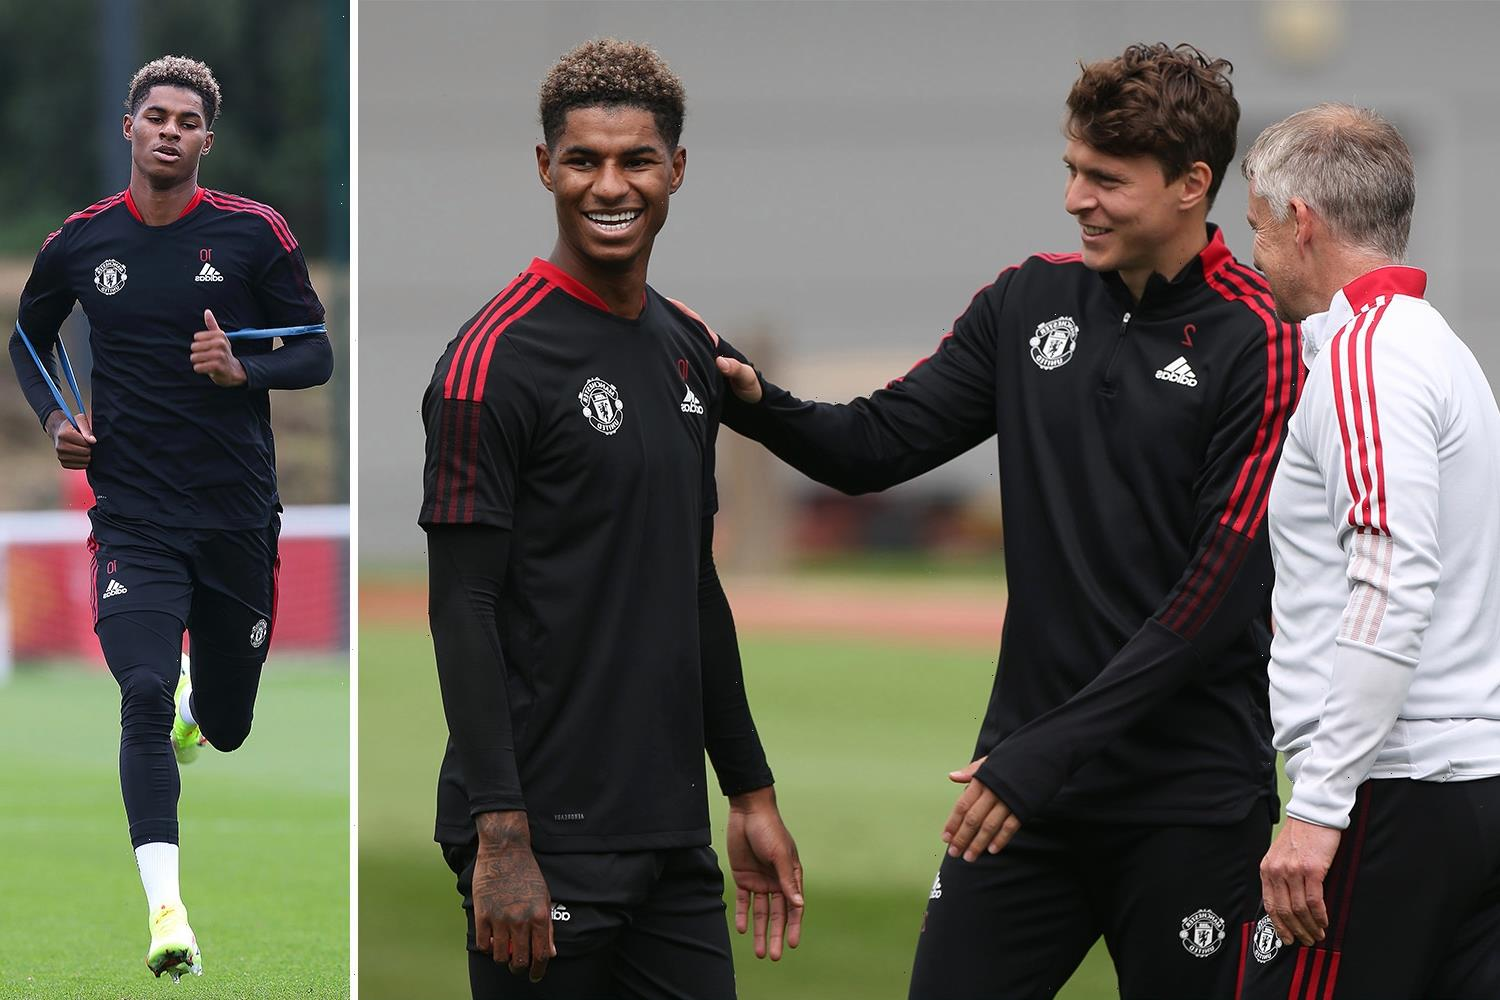 Marcus Rashford returns to Man Utd training for first time since shoulder operation as striker makes early recovery